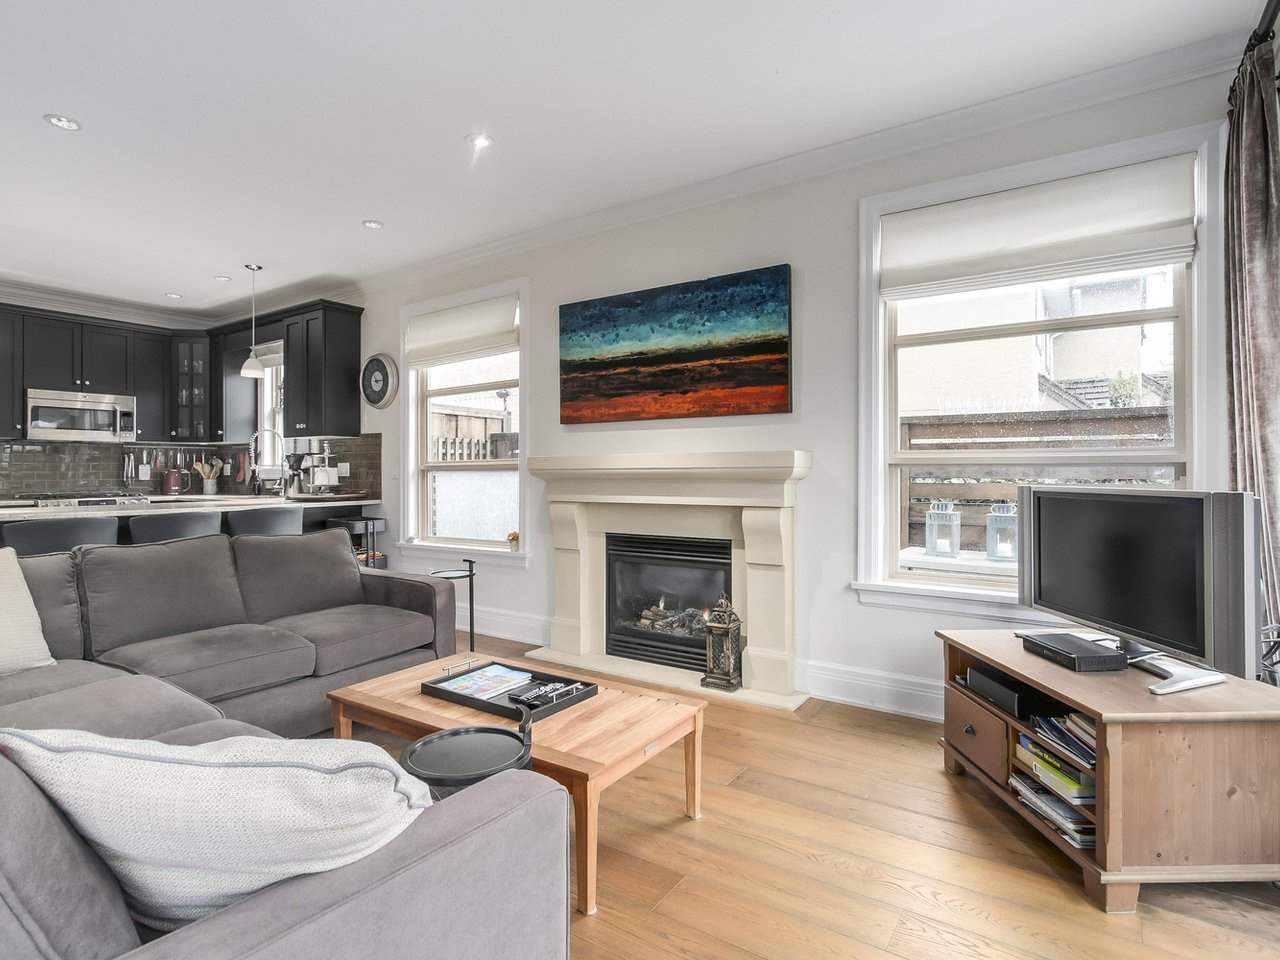 """Photo 3: Photos: 4 249 W 16TH Street in North Vancouver: Central Lonsdale House 1/2 Duplex for sale in """"THE WEST"""" : MLS®# R2262955"""